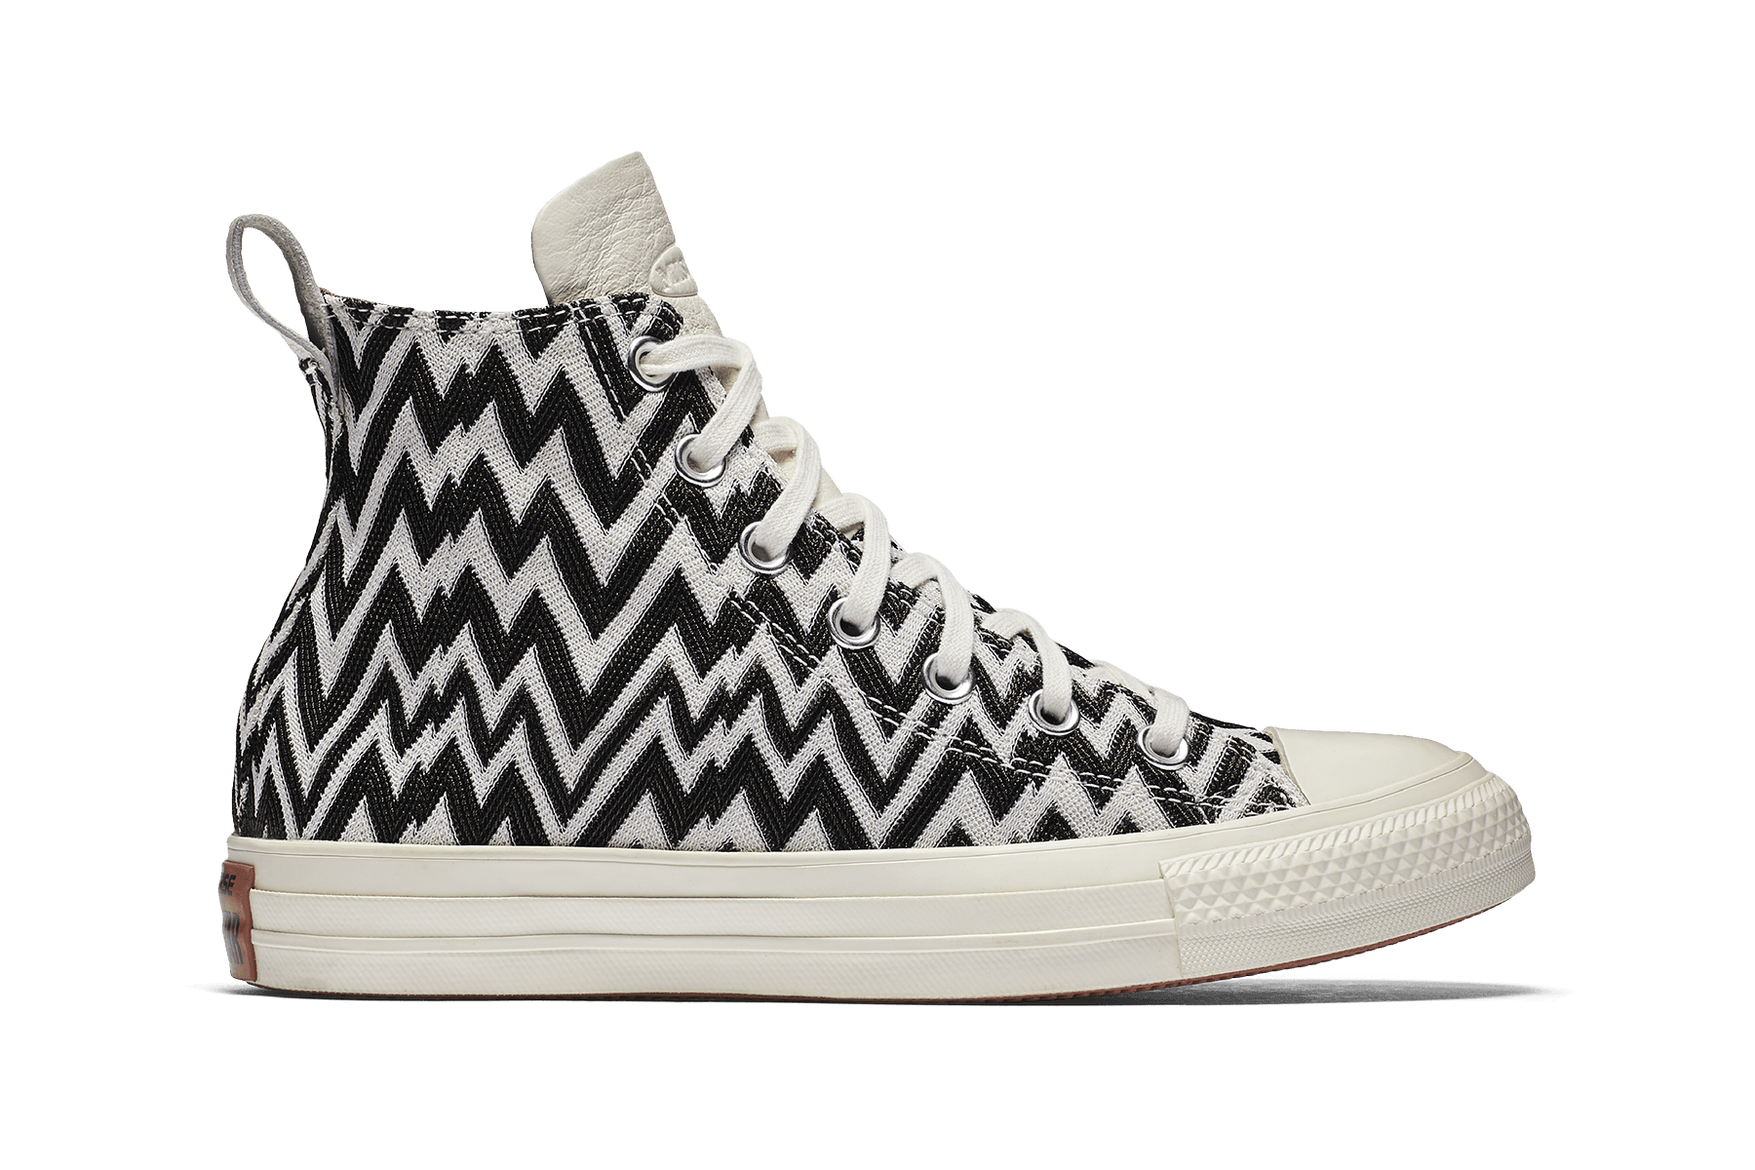 converse-missoni-chuck-taylor-all-star-high-top-4.png